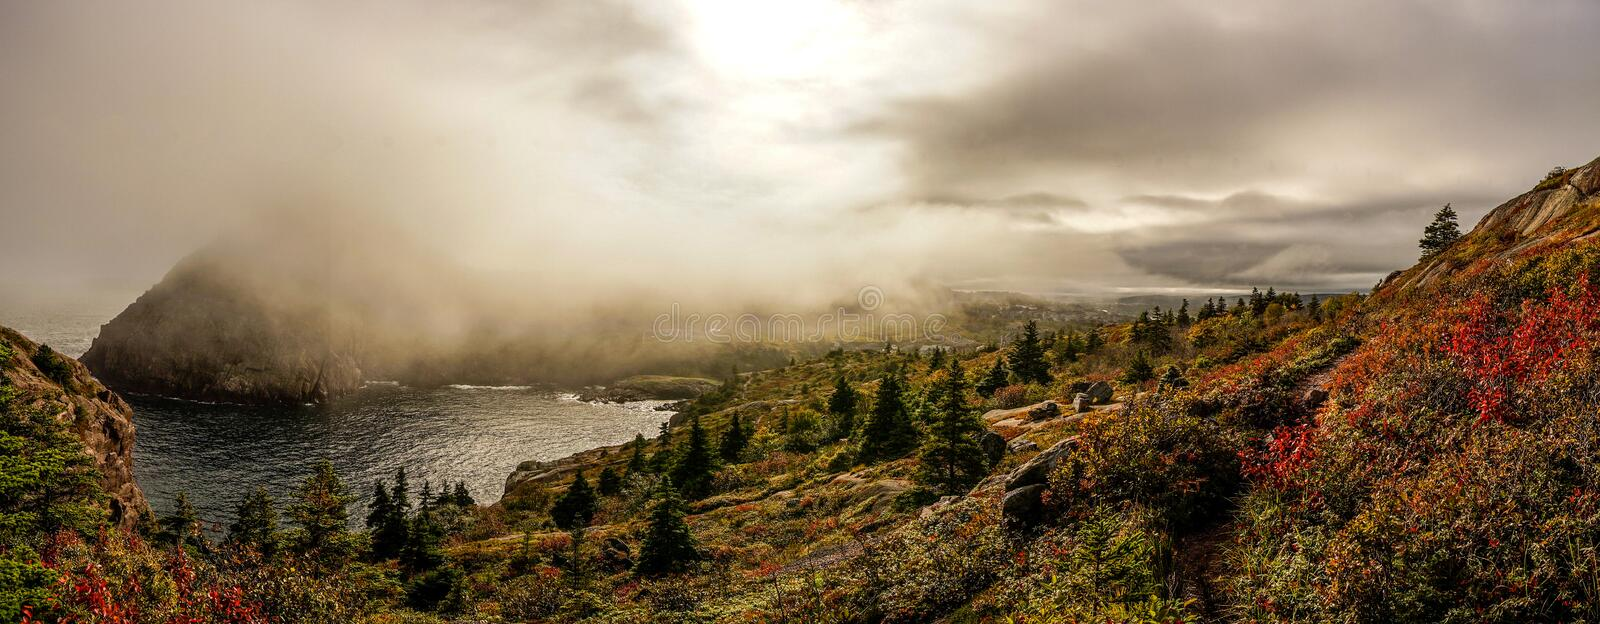 Canada Stock Images - Download 384,377 Royalty Free Photos